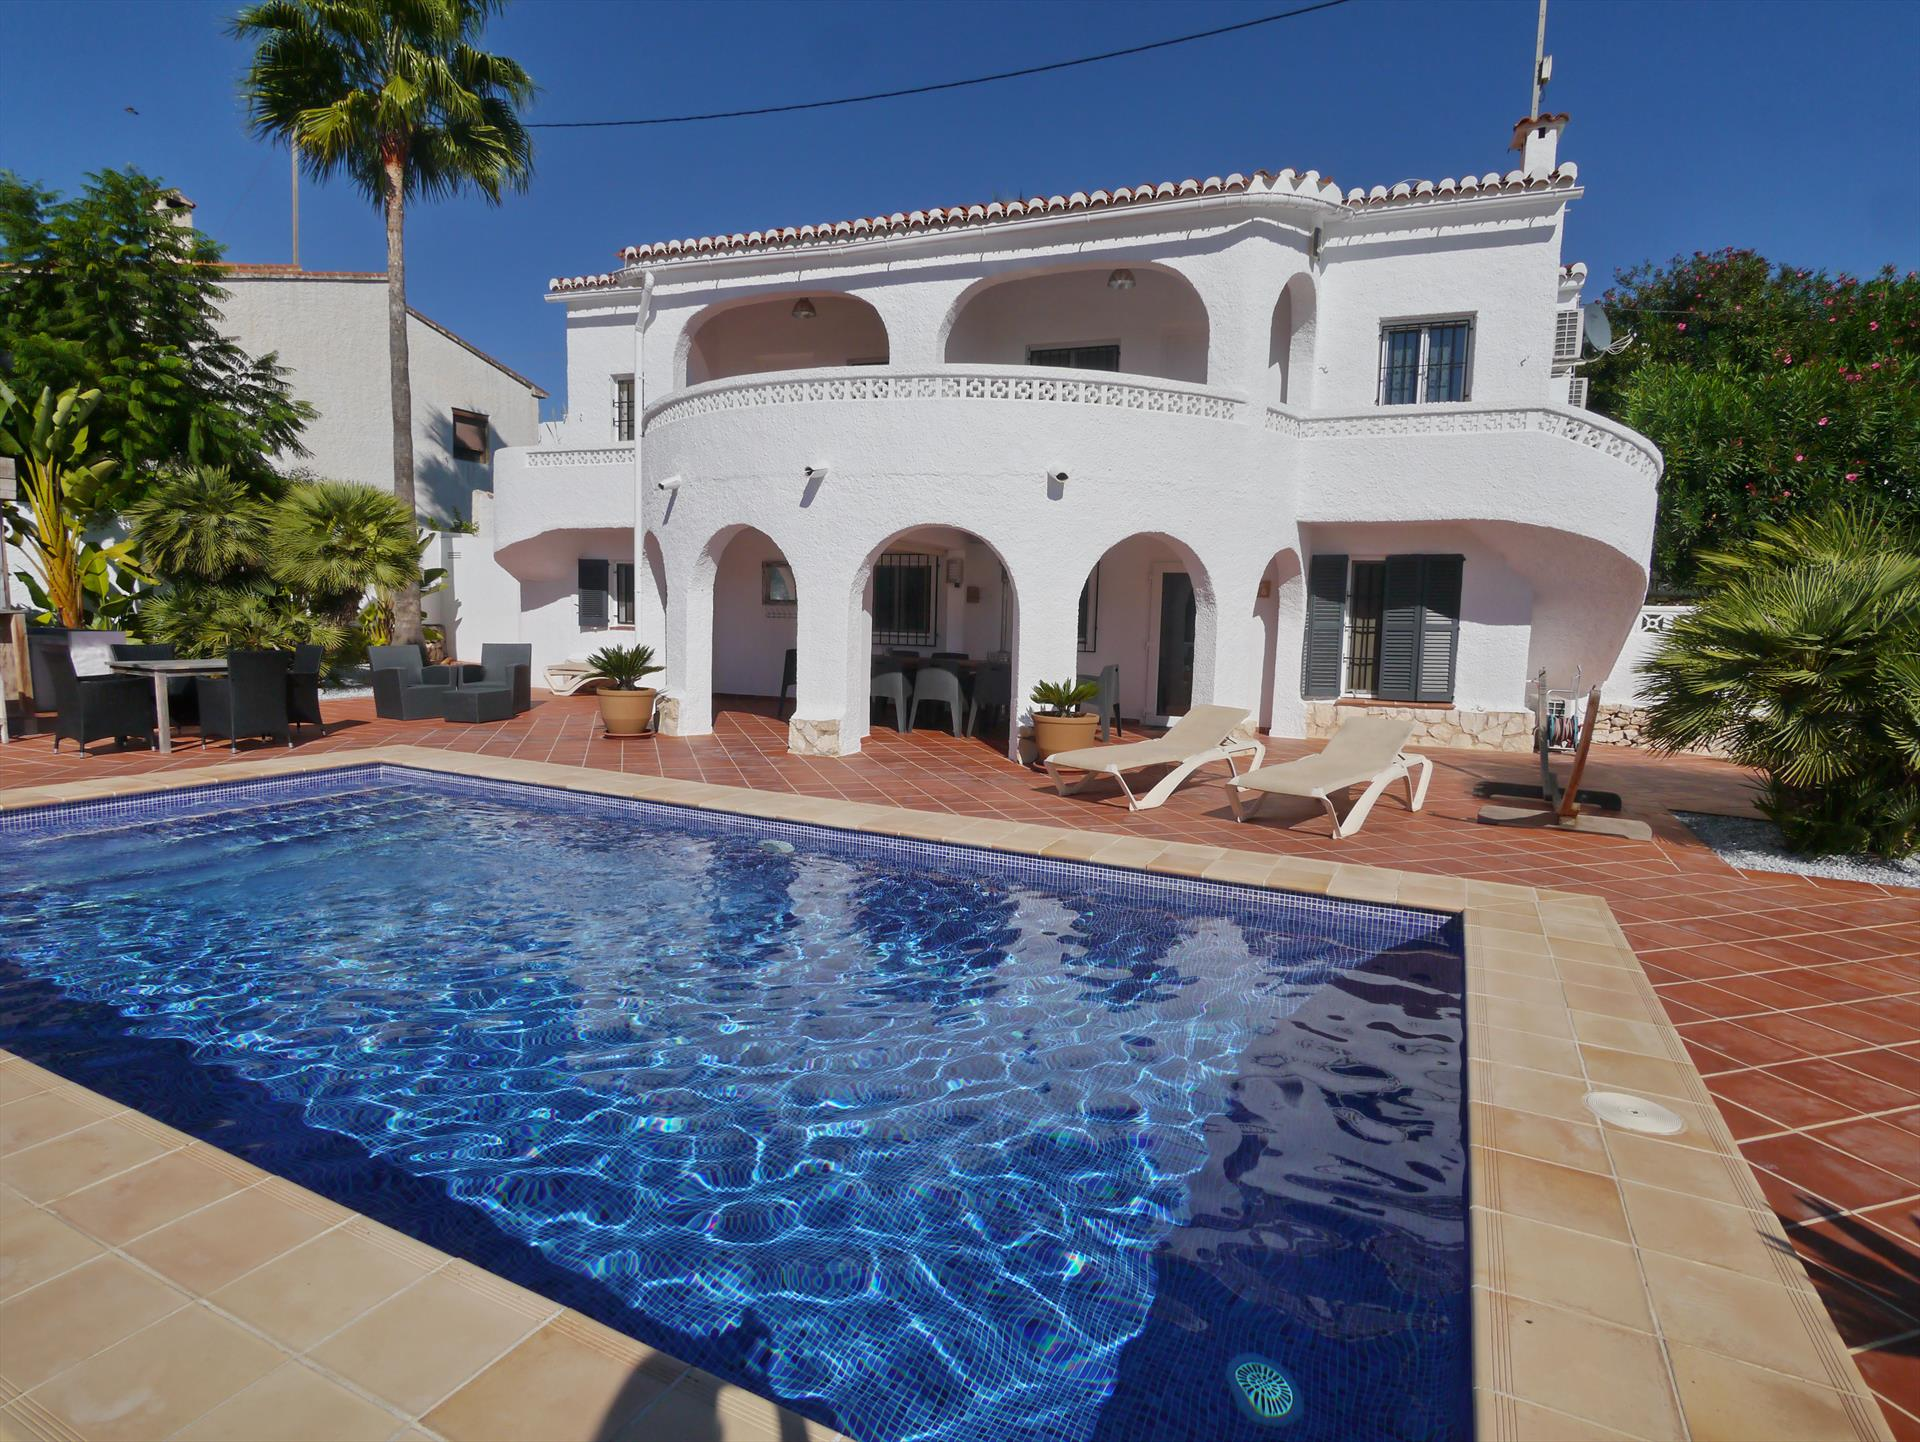 Thiago, Wonderful and comfortable villa in Benissa, on the Costa Blanca, Spain with private pool for 8 persons. The villa is situated.....